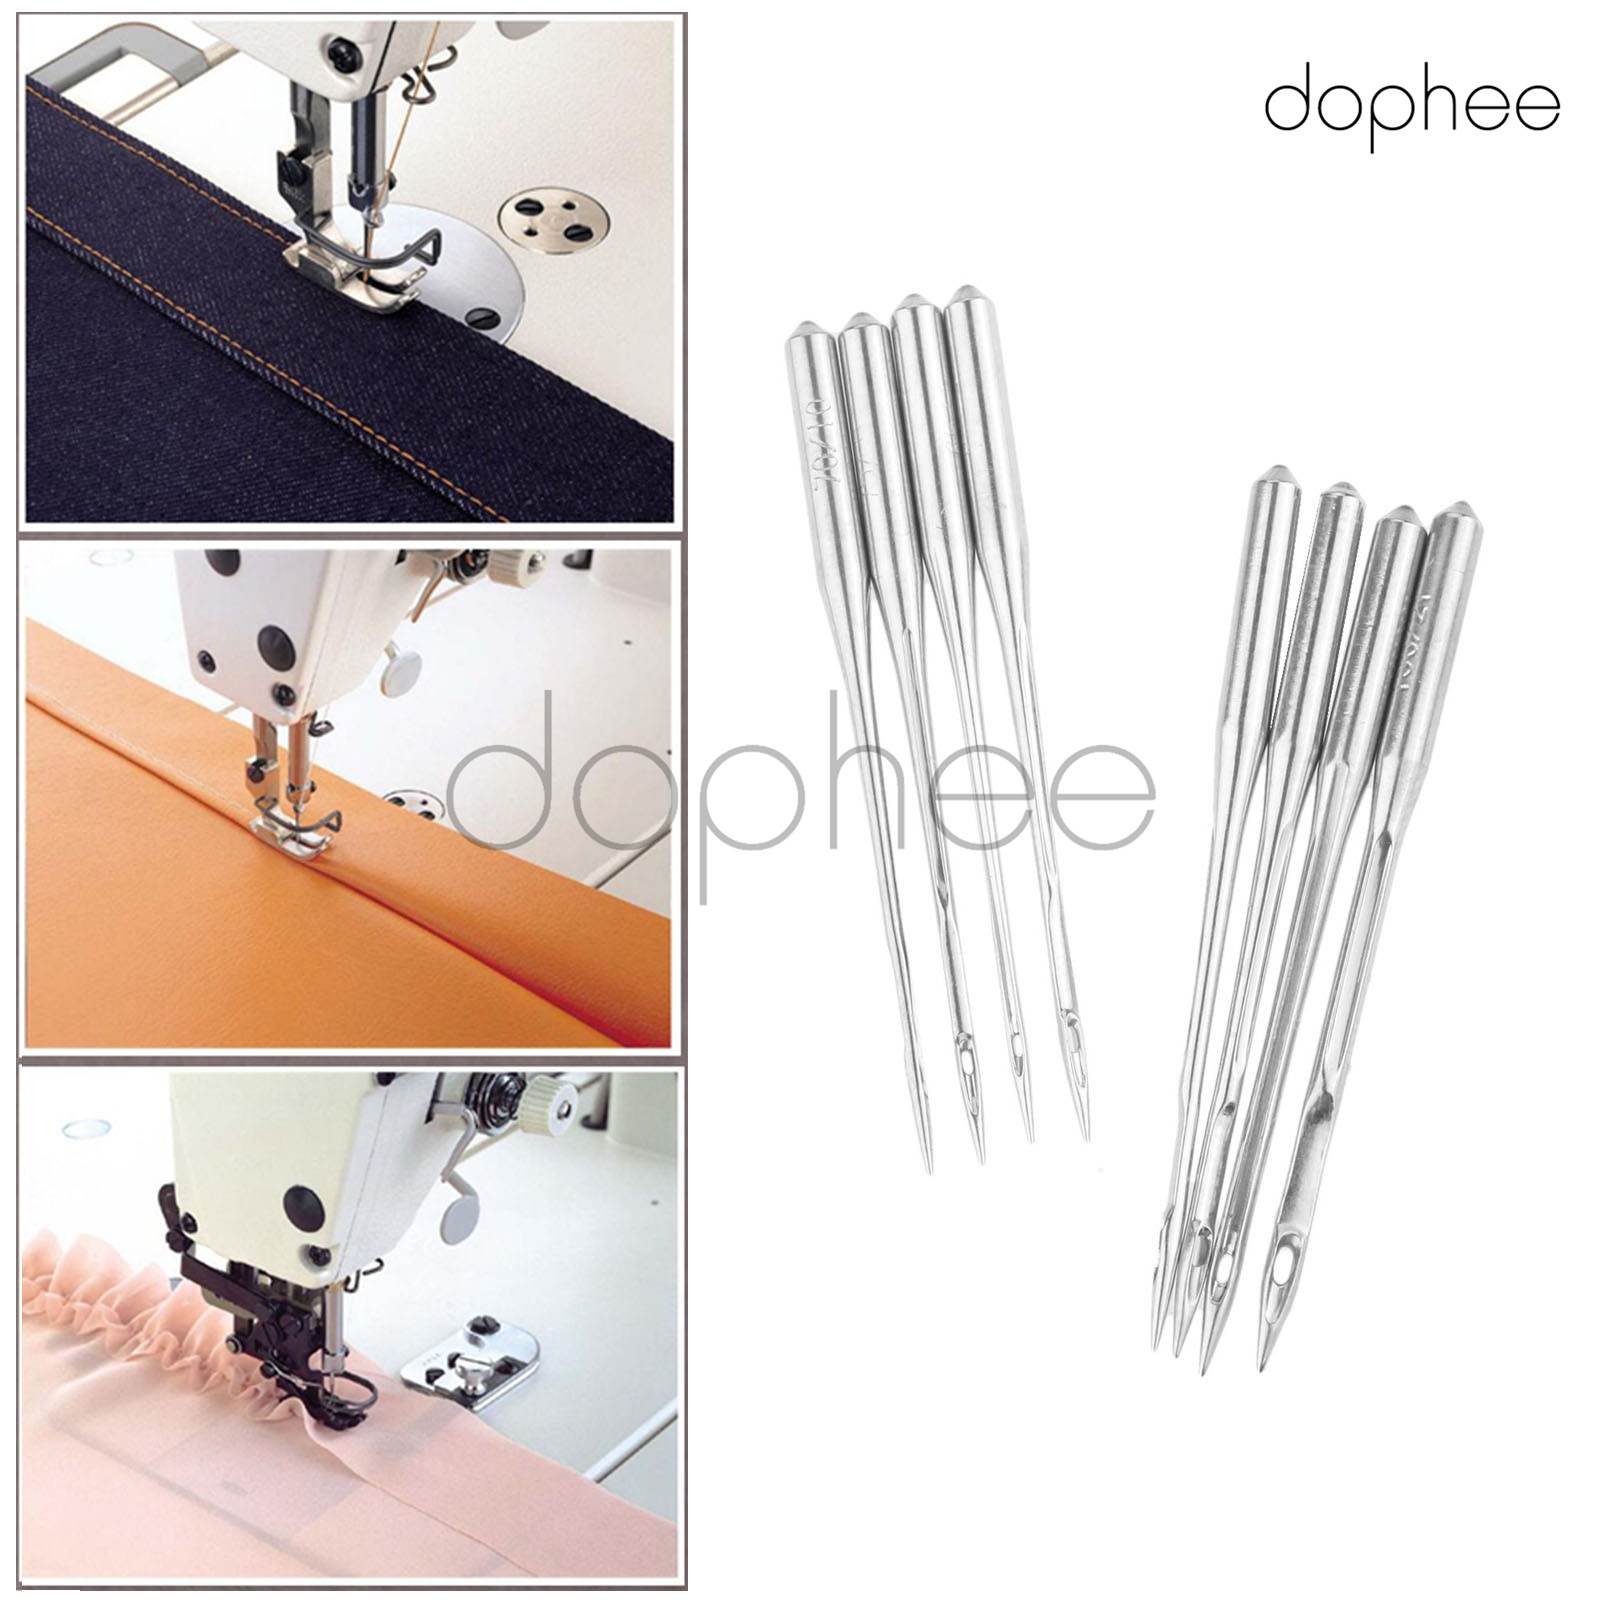 Dophee 10Pcs Metal Stainless Sewing Machine Bobbins for Brother Toyota Janome Singer